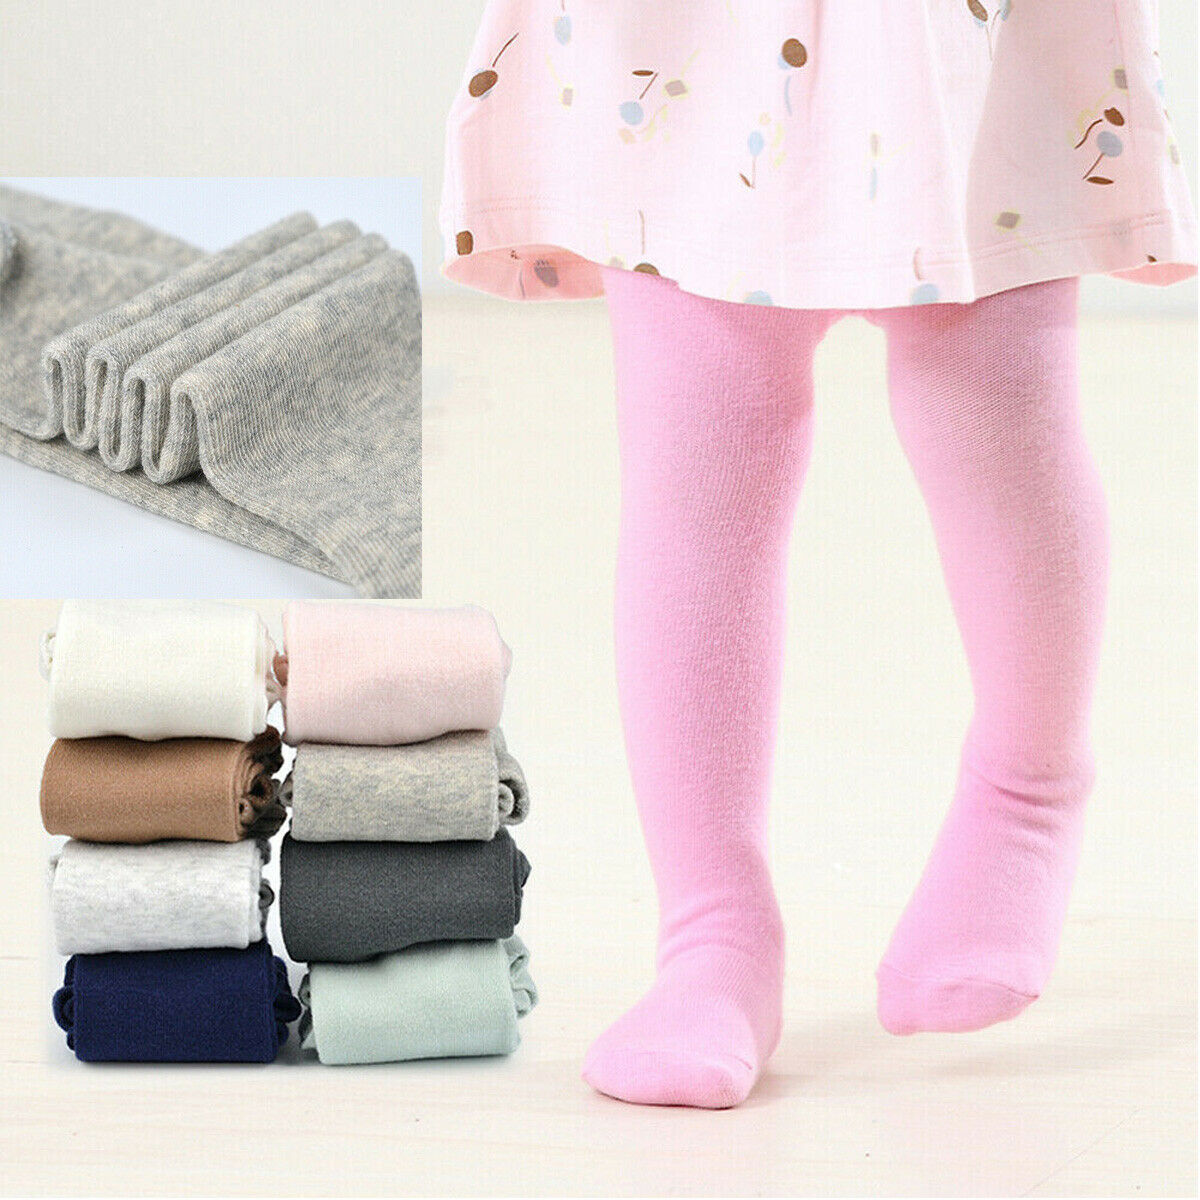 Newborn Baby Tights Toddler Kids Baby Girls Cotton Winter Warm Tights Stockings Pants Little Baby Casual Trousers Pantyhose